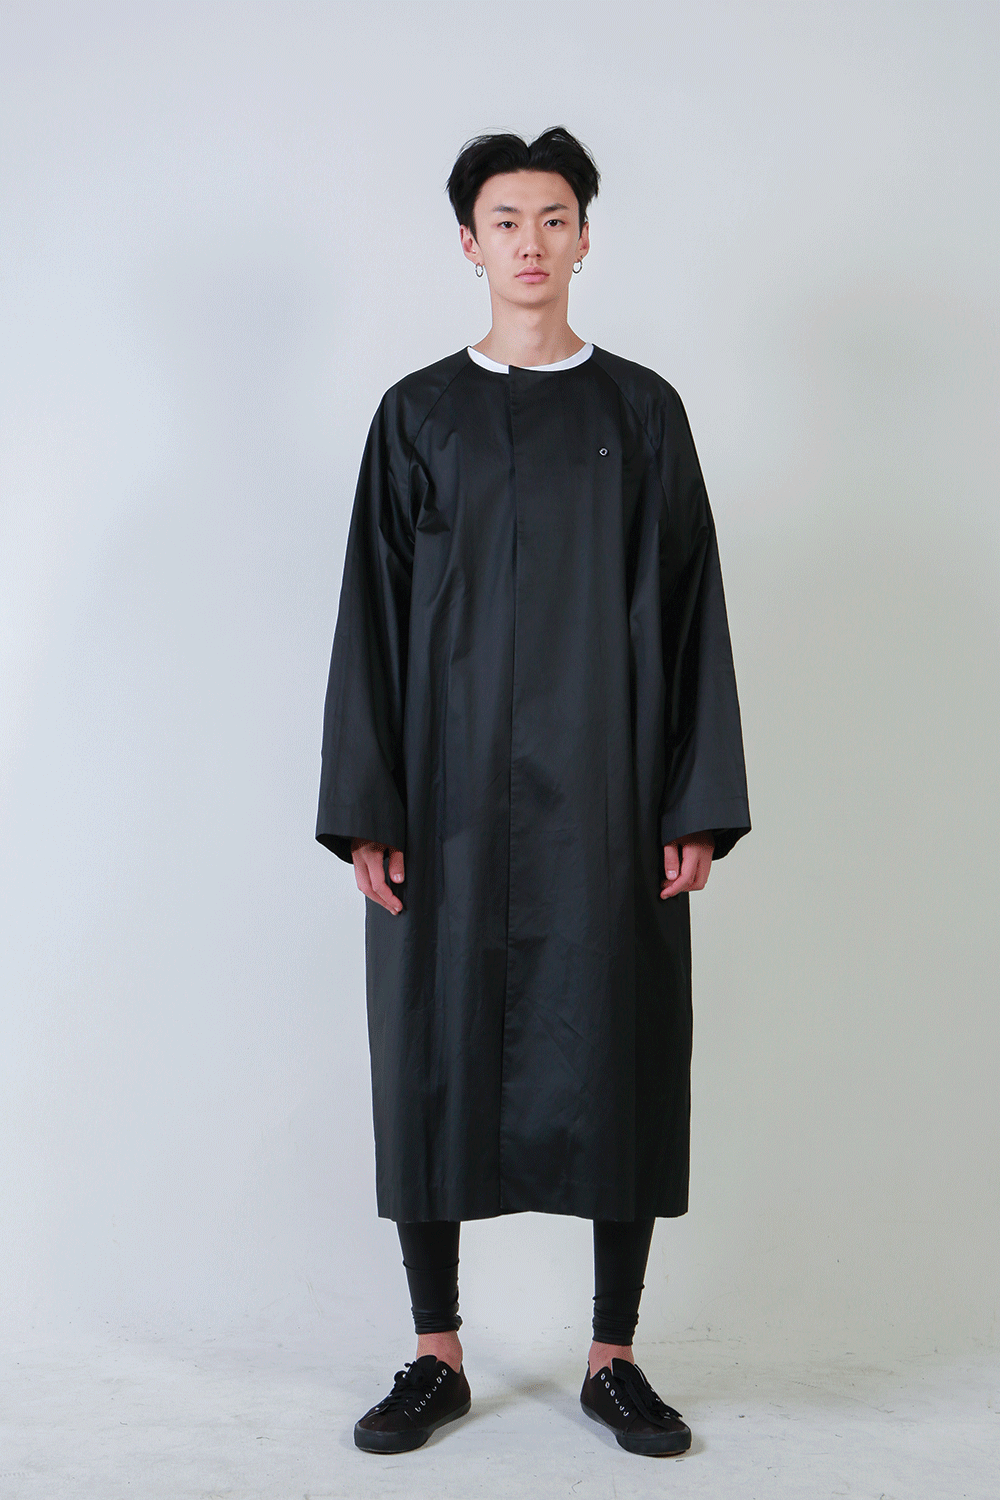 S/S18 NEO LONG COAT